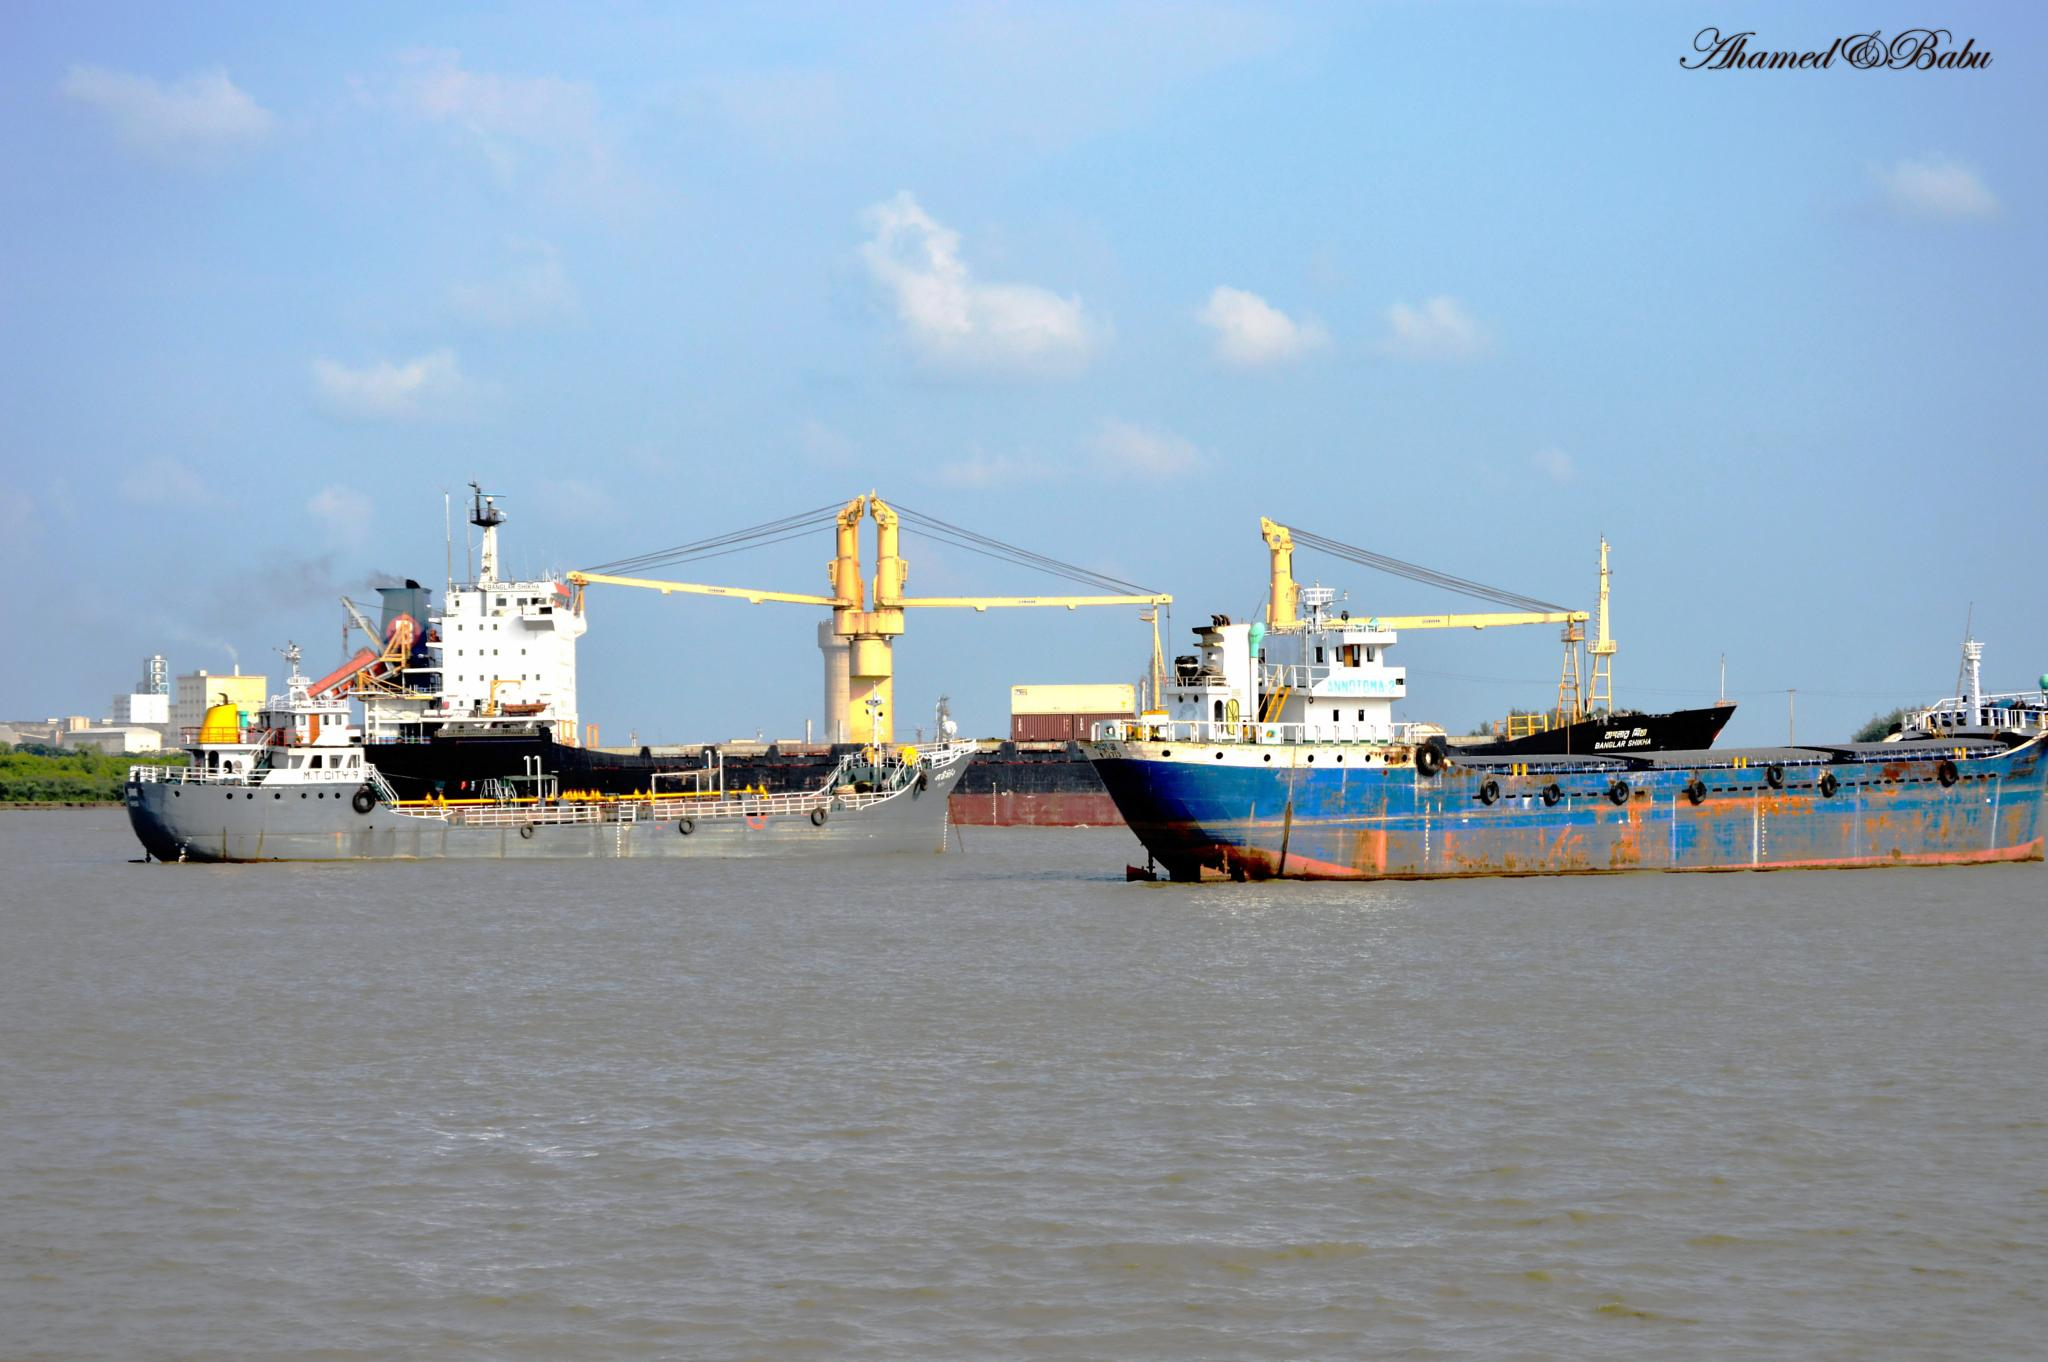 The Port of Chittagong by Ahamed Babu